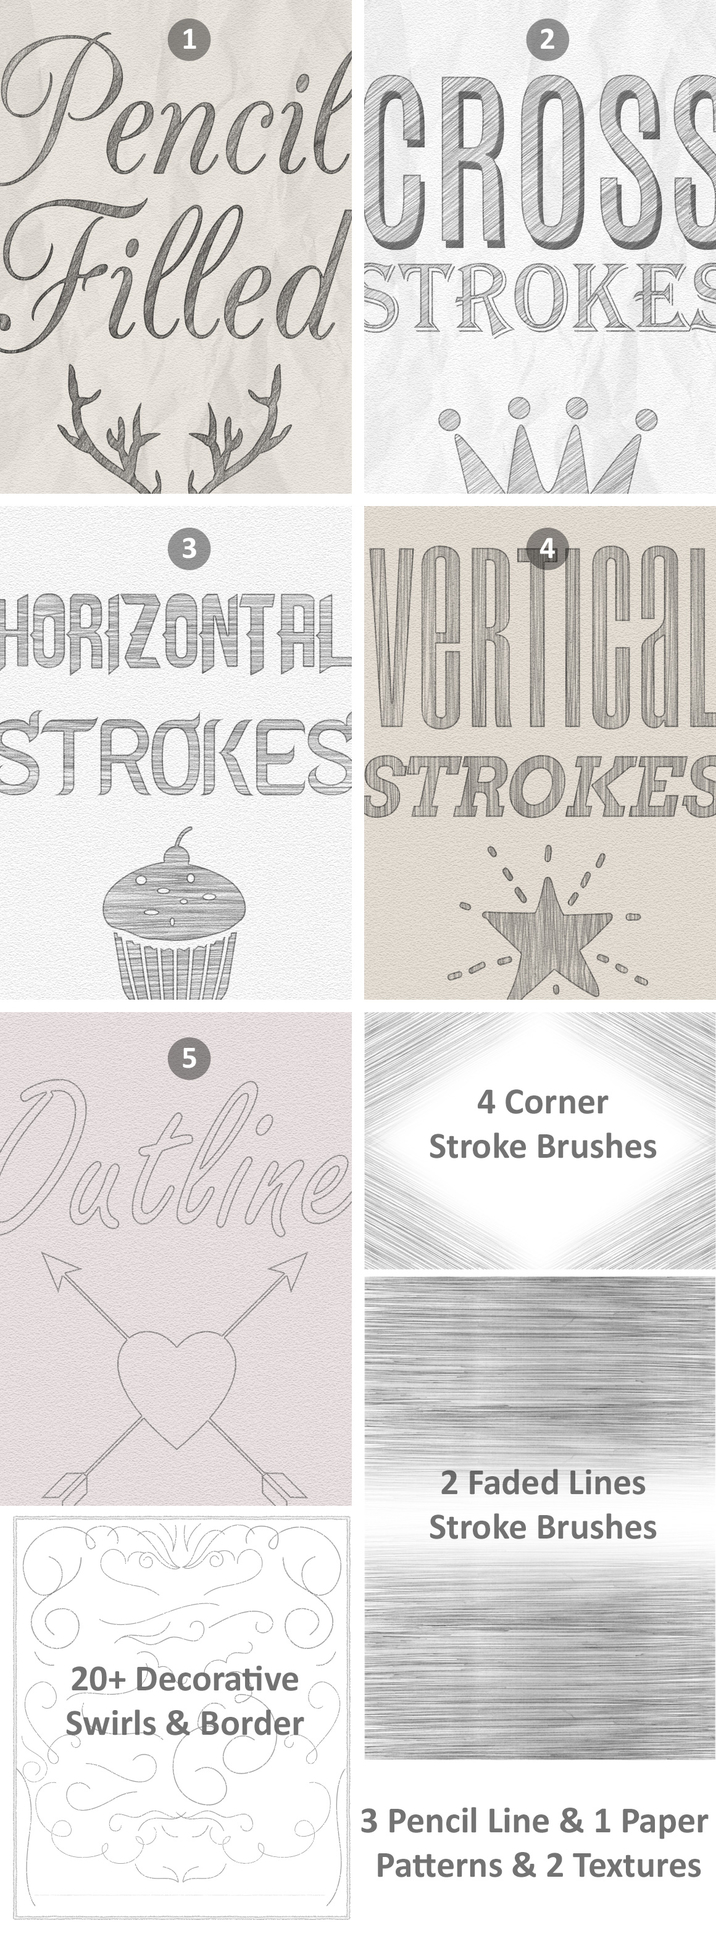 Creativemarket_PencilMate_Pencil_Effects_52110_cap02